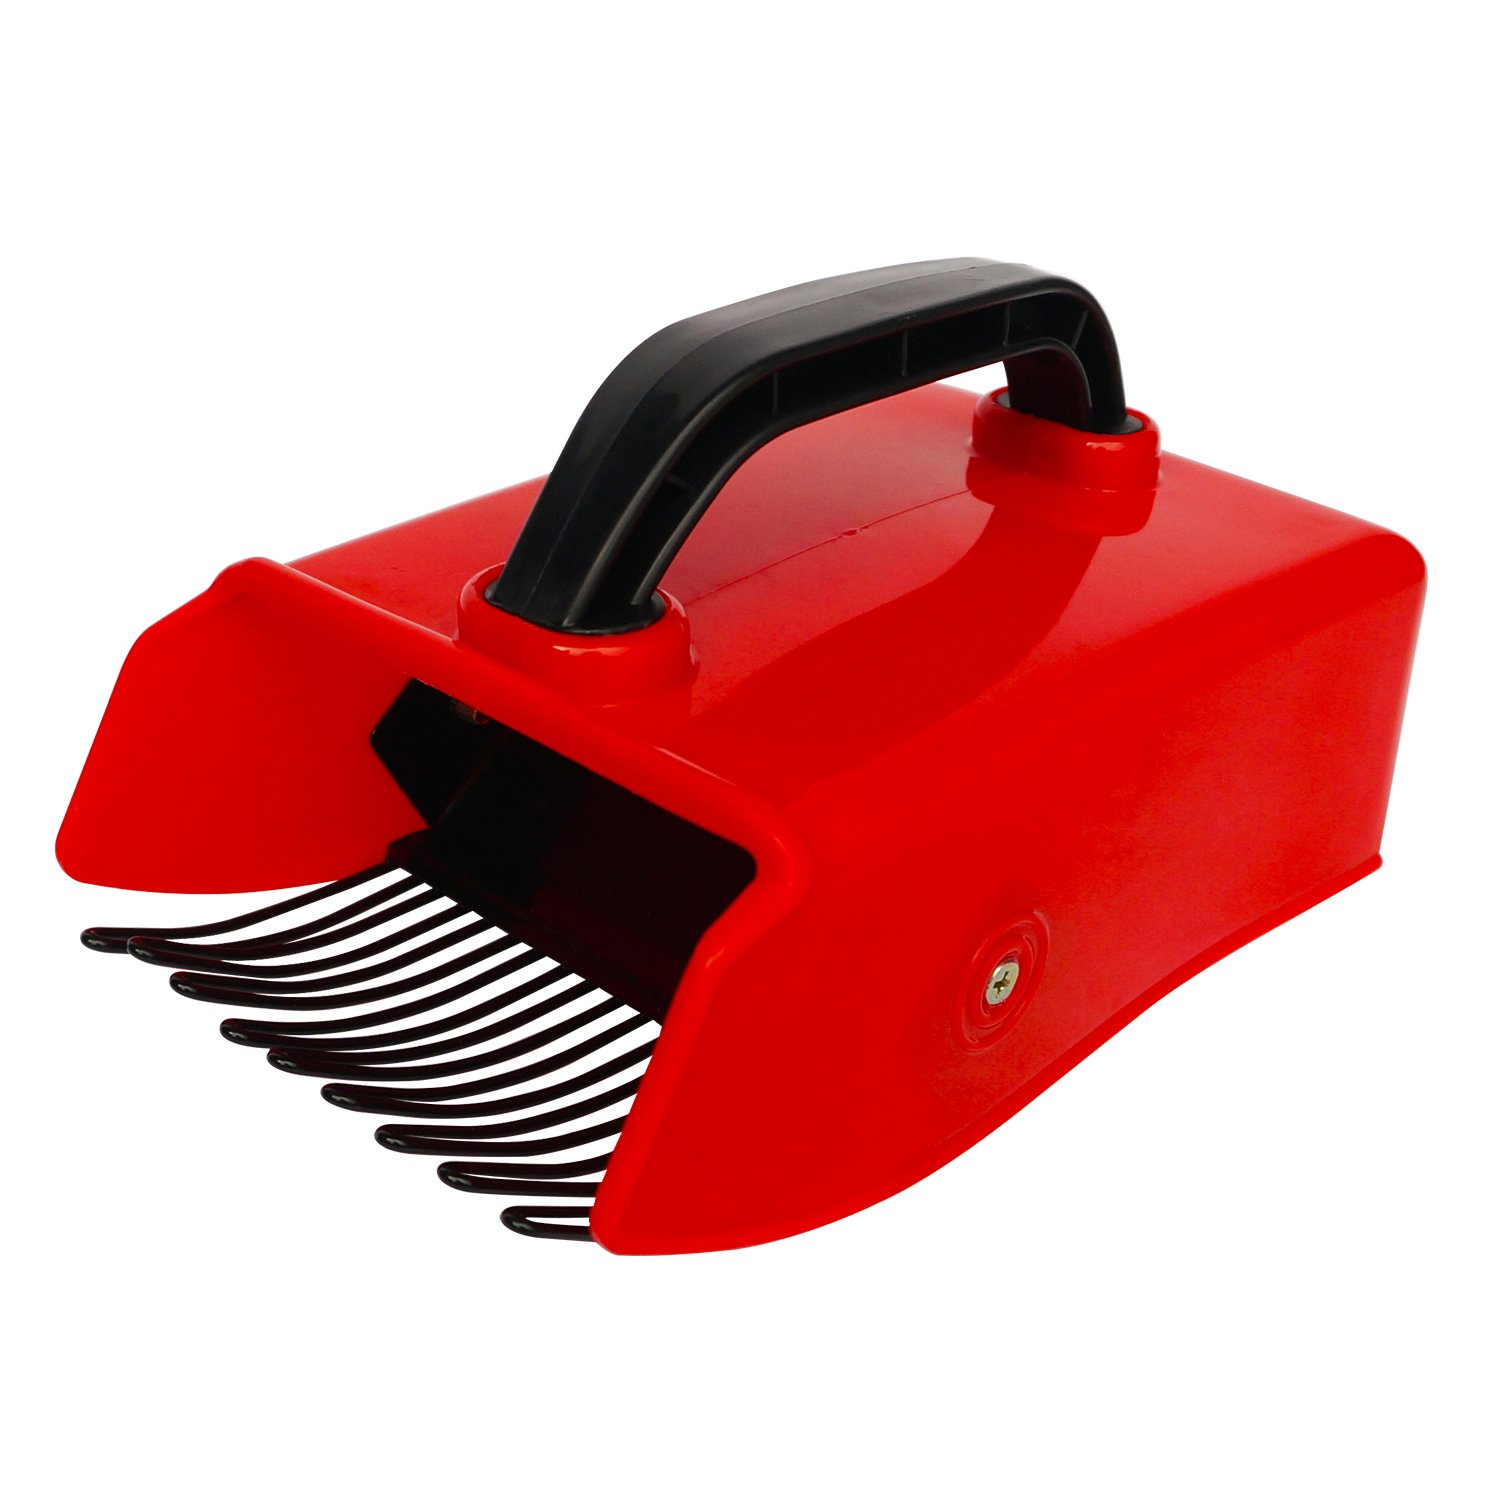 Berry Picker with Metallic Comb and Ergonomic Handle for Easier Berry Picking Swedish Design by Ivique